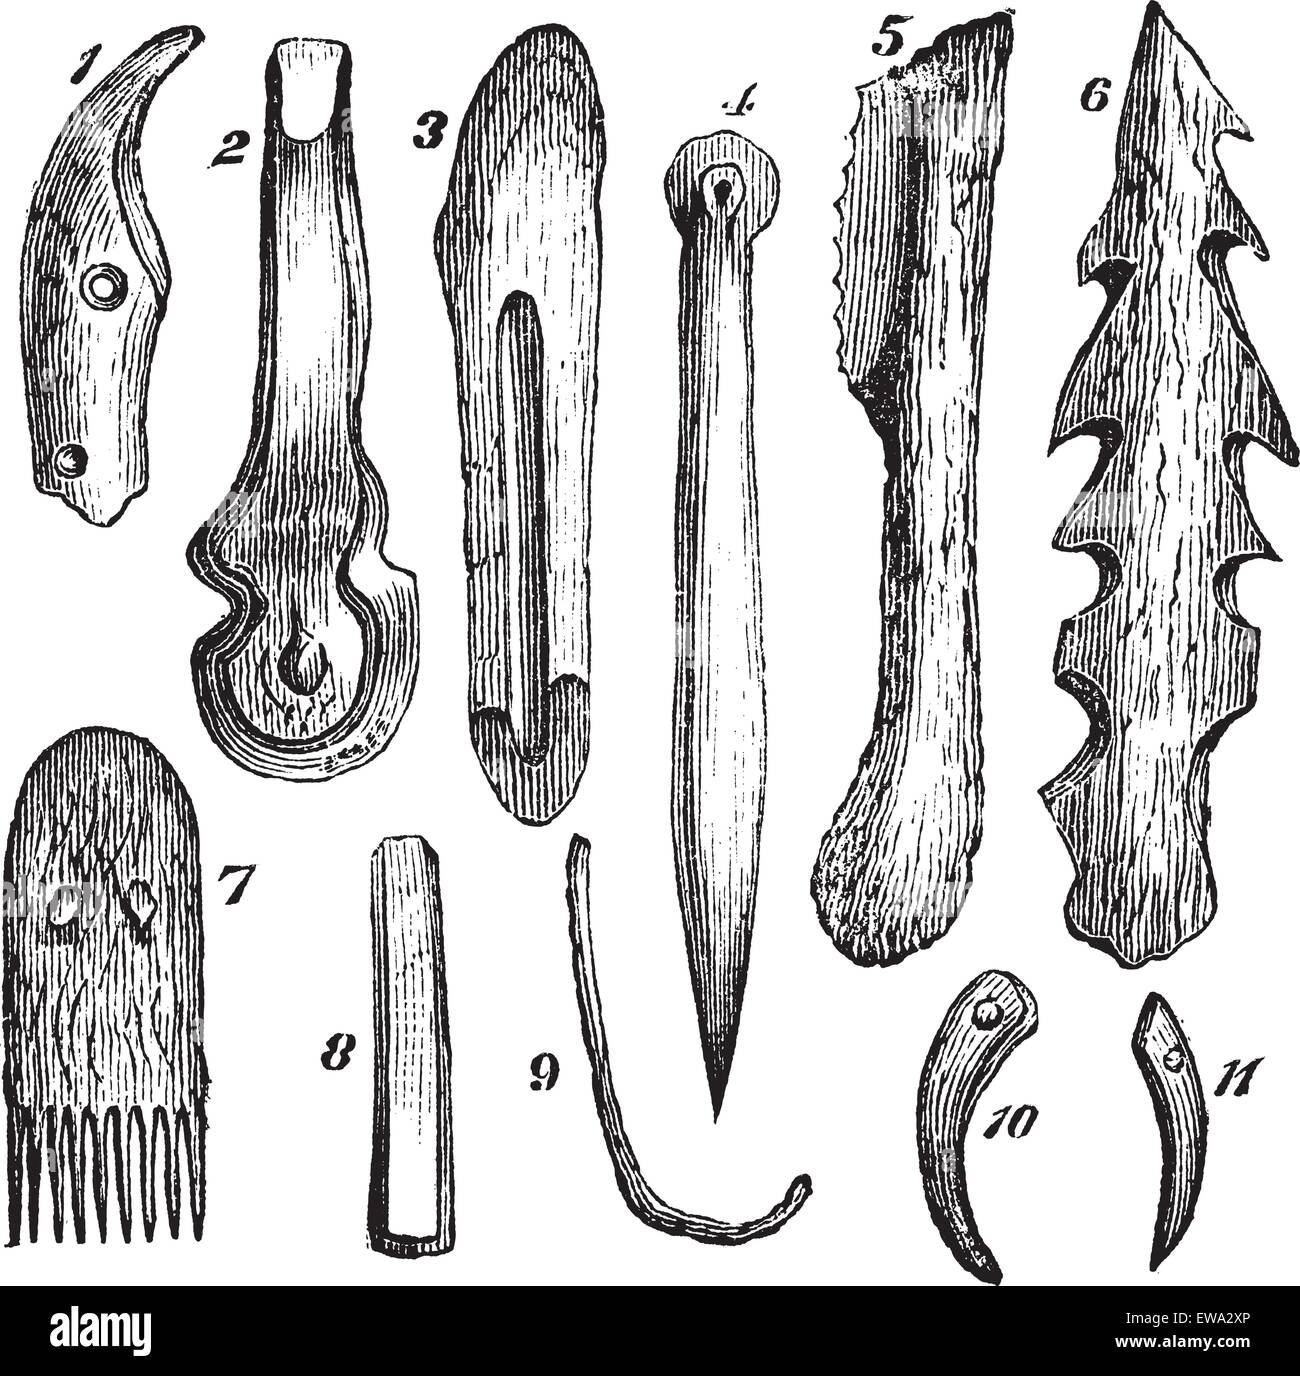 Bone implements, flint and wood, found in Moosseedorf vintage engraving. Old engraved illustration of 1.knife-tooth - Stock Image